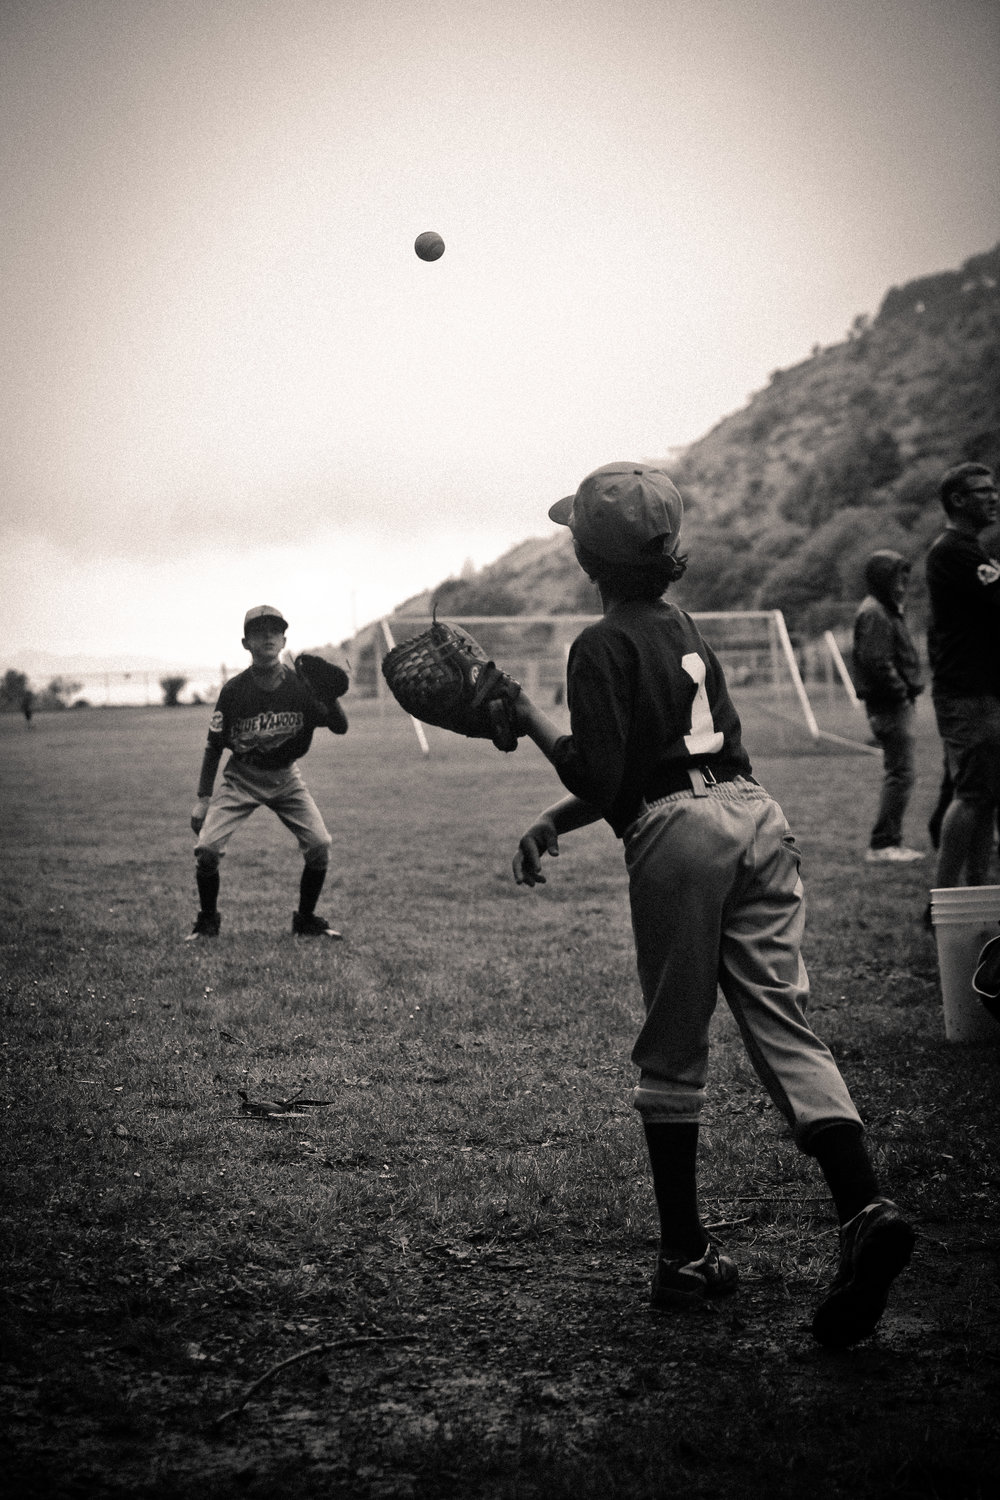 Copy of Twilight Baseball ©Lisa Berman